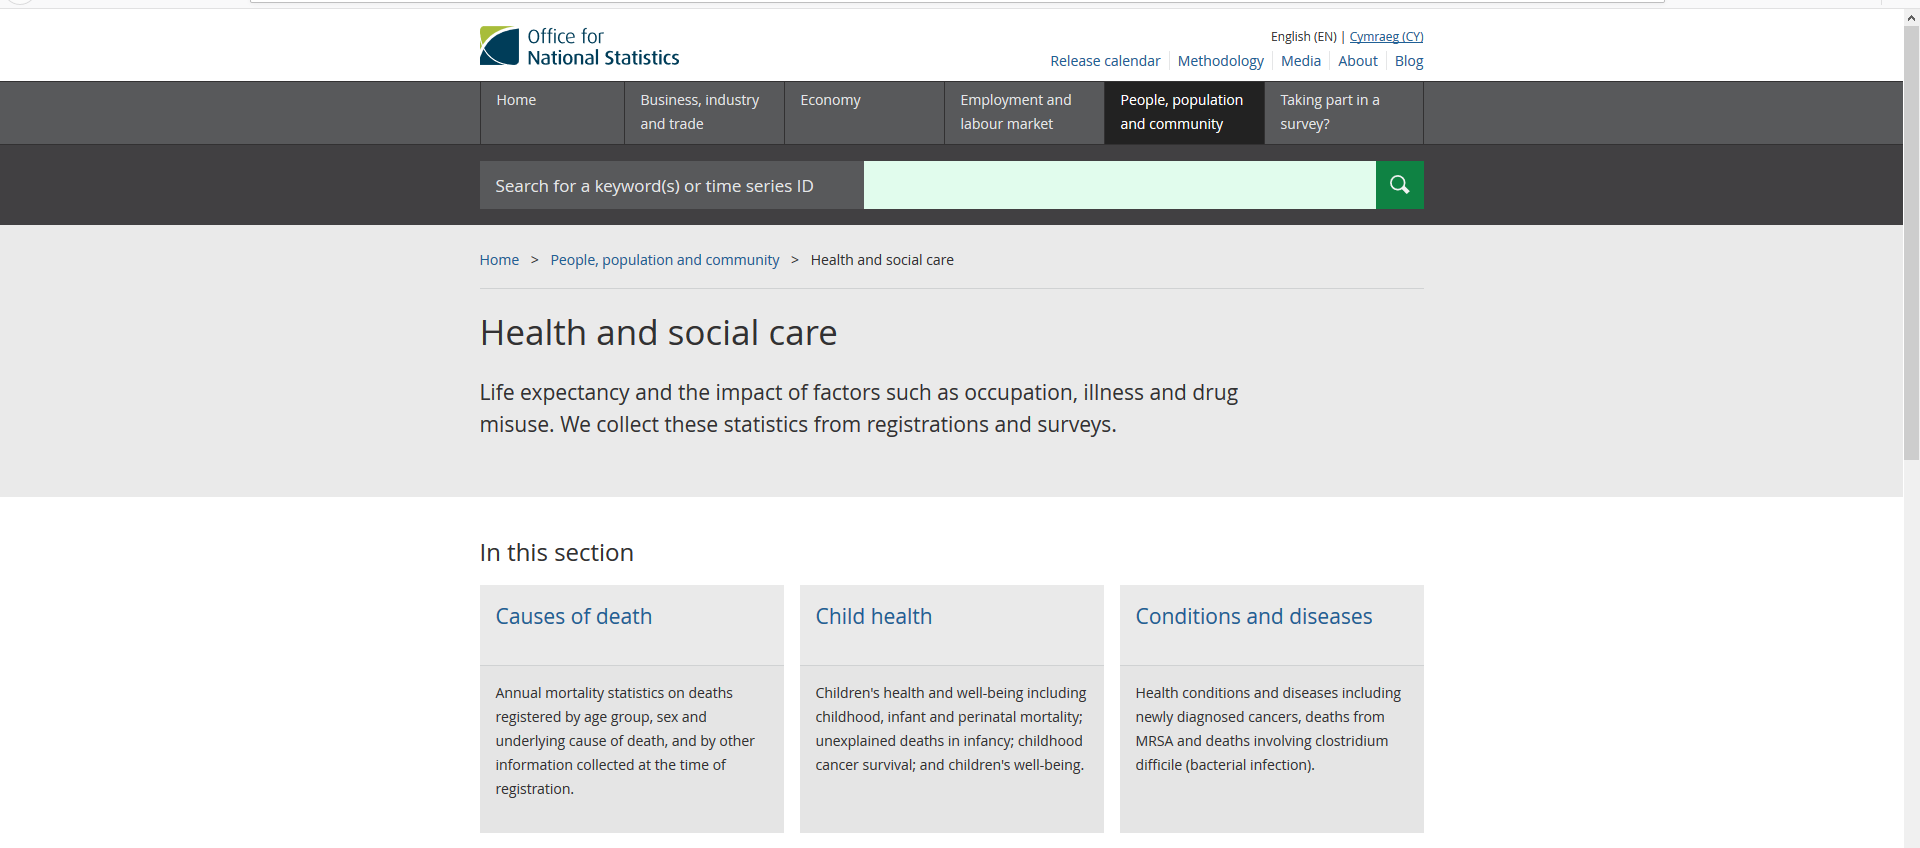 Office for National Statistics Health and social care